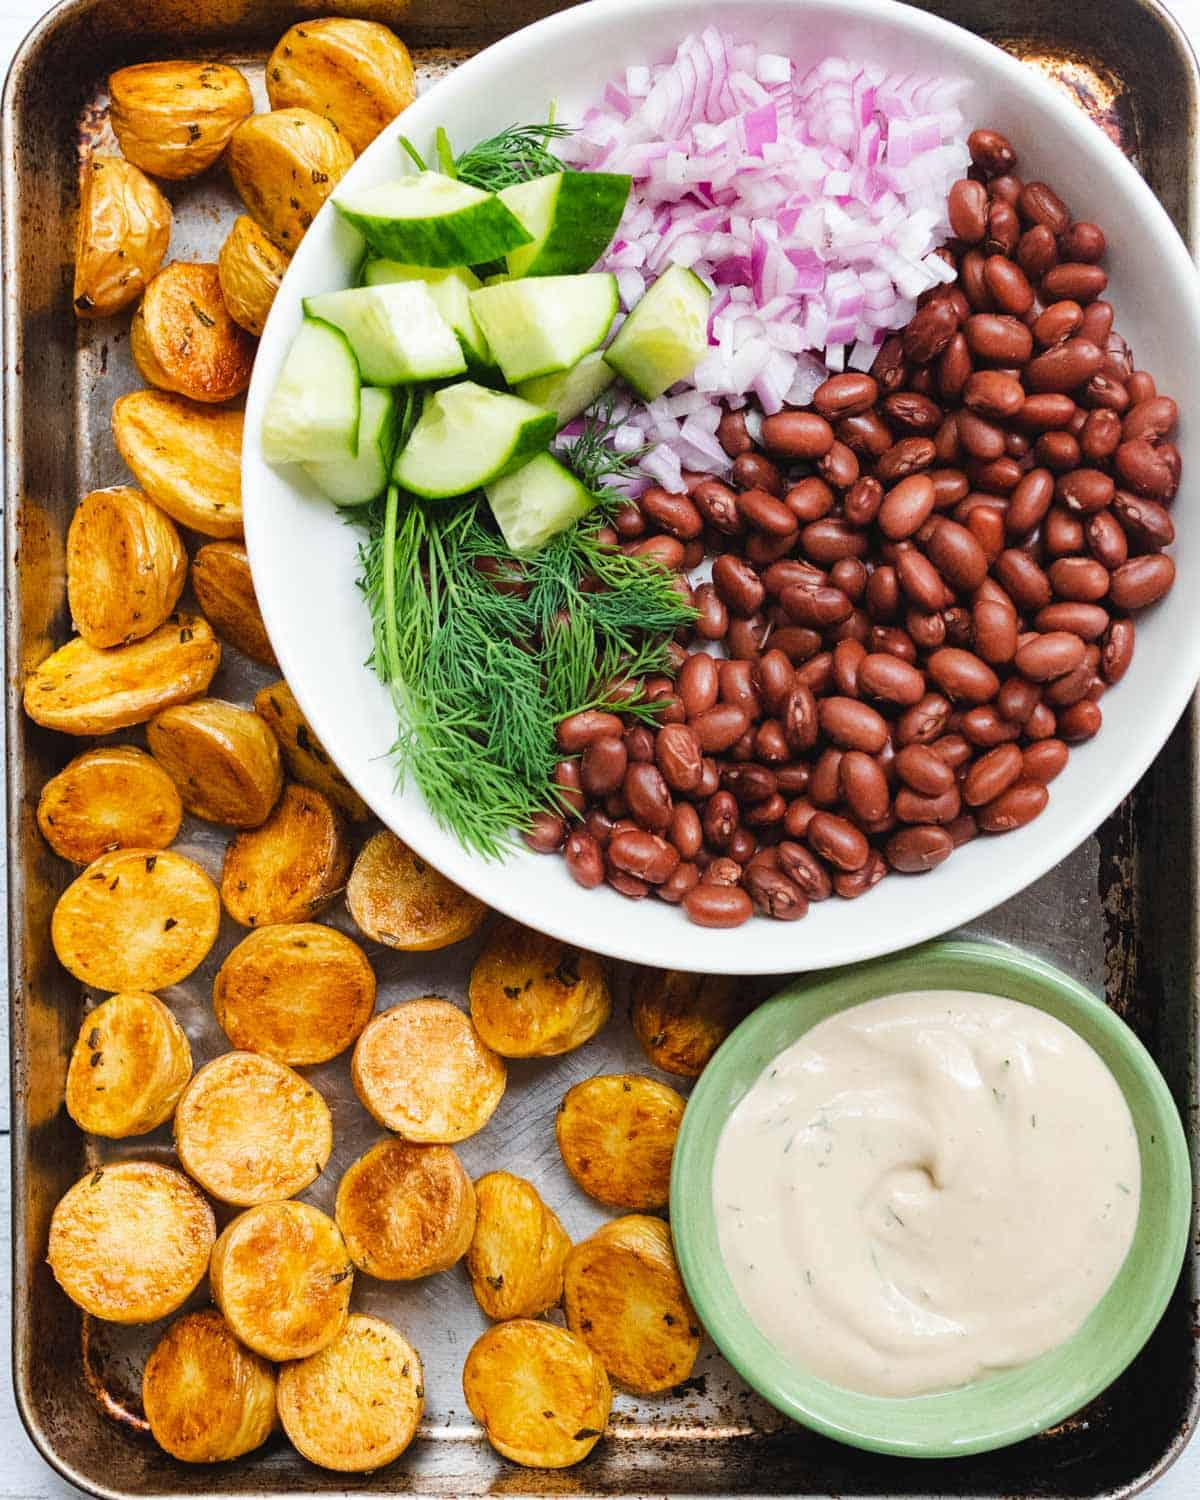 Roasted baby yellow potatoes, creamy Dijon tahini Dill dressing, chopped cucumbers and red onions, and fresh dill.